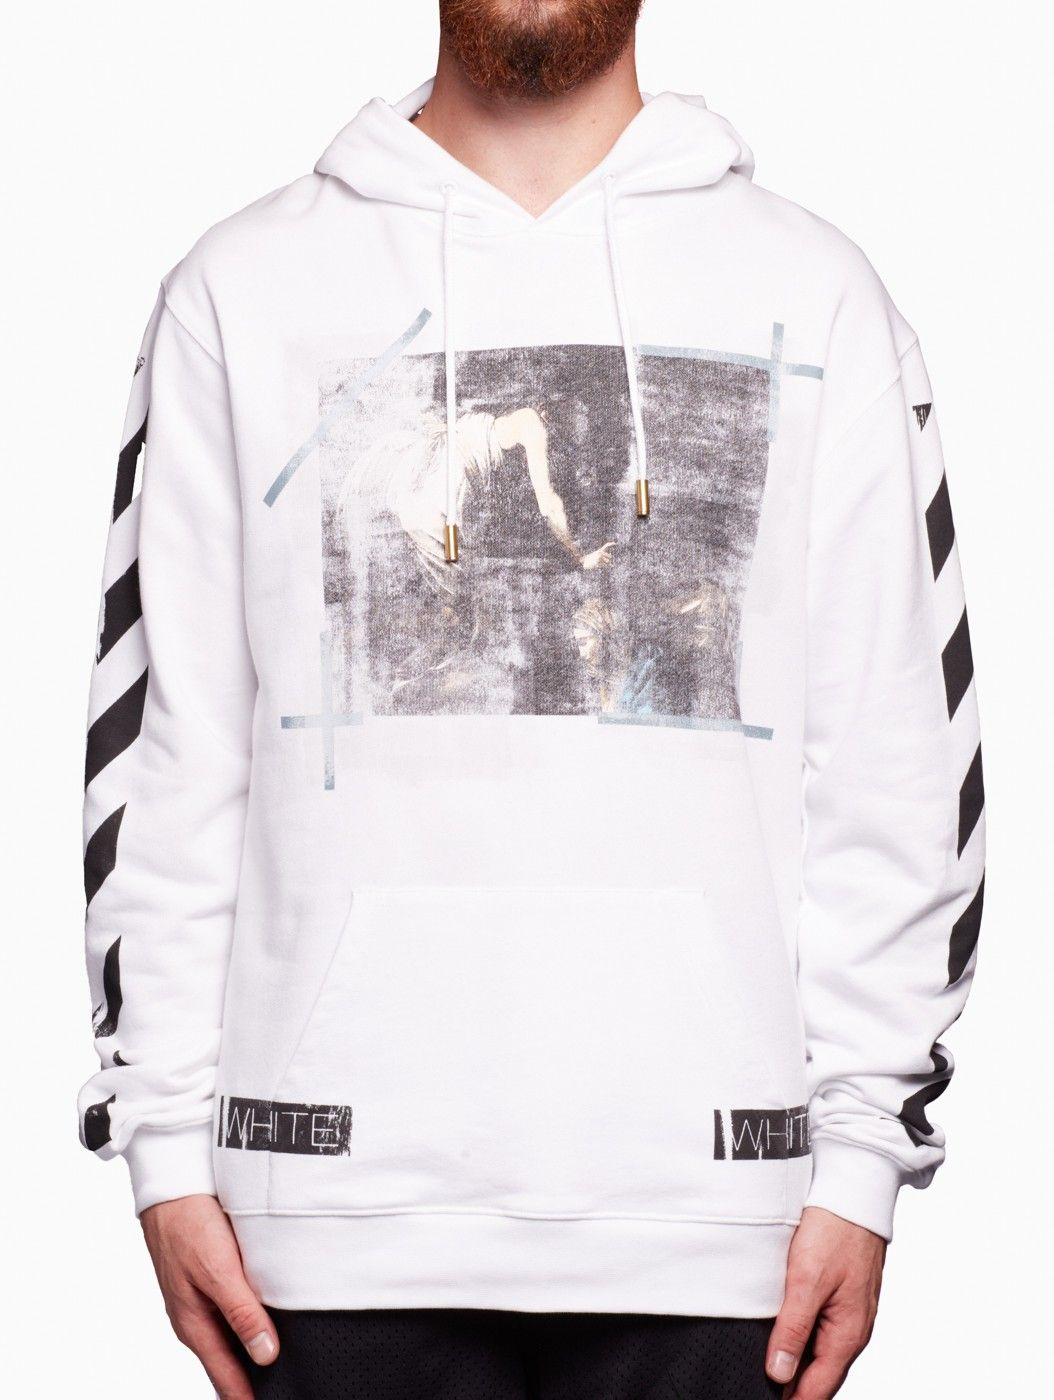 TOPWEAR - Sweatshirts White* Browse High Quality Online Cheap Sale Outlet aeOM9CM